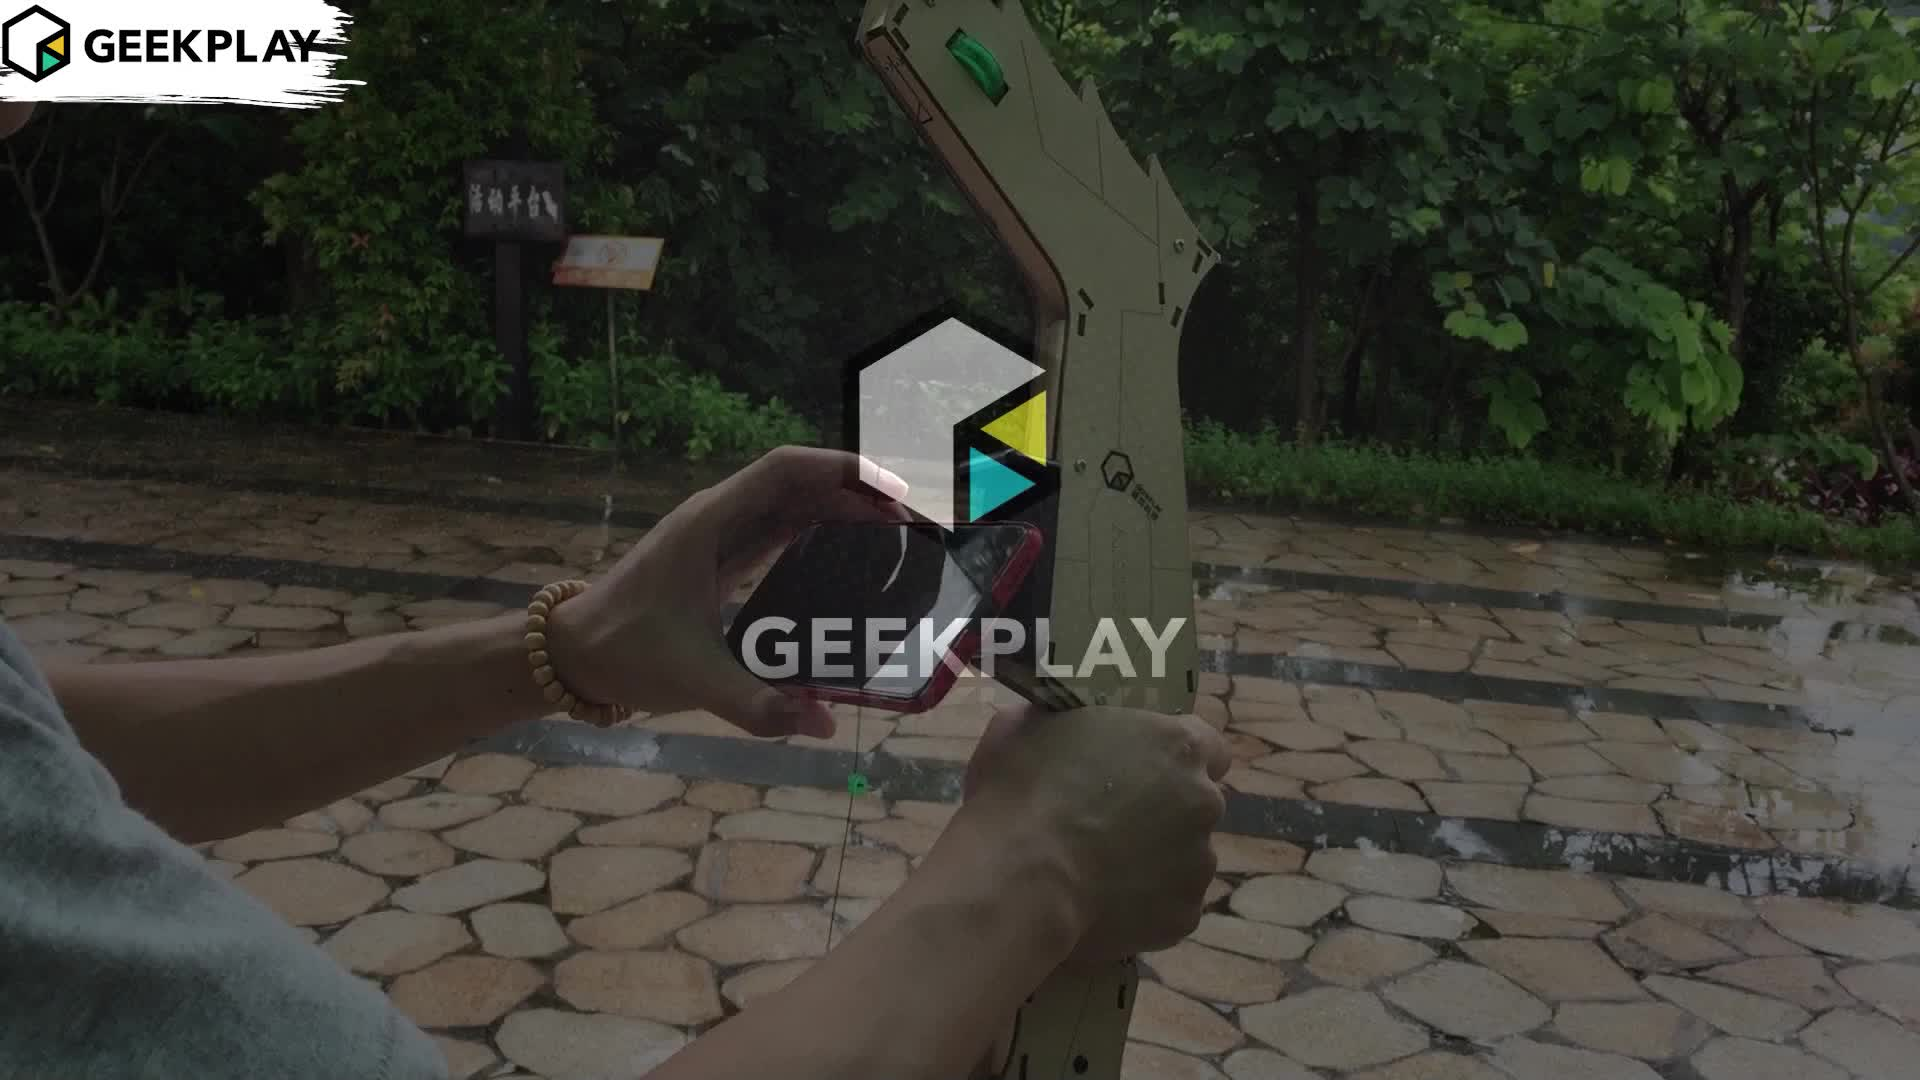 Augmented Reality 4D AR archer equipment creativity intelligence kids toys